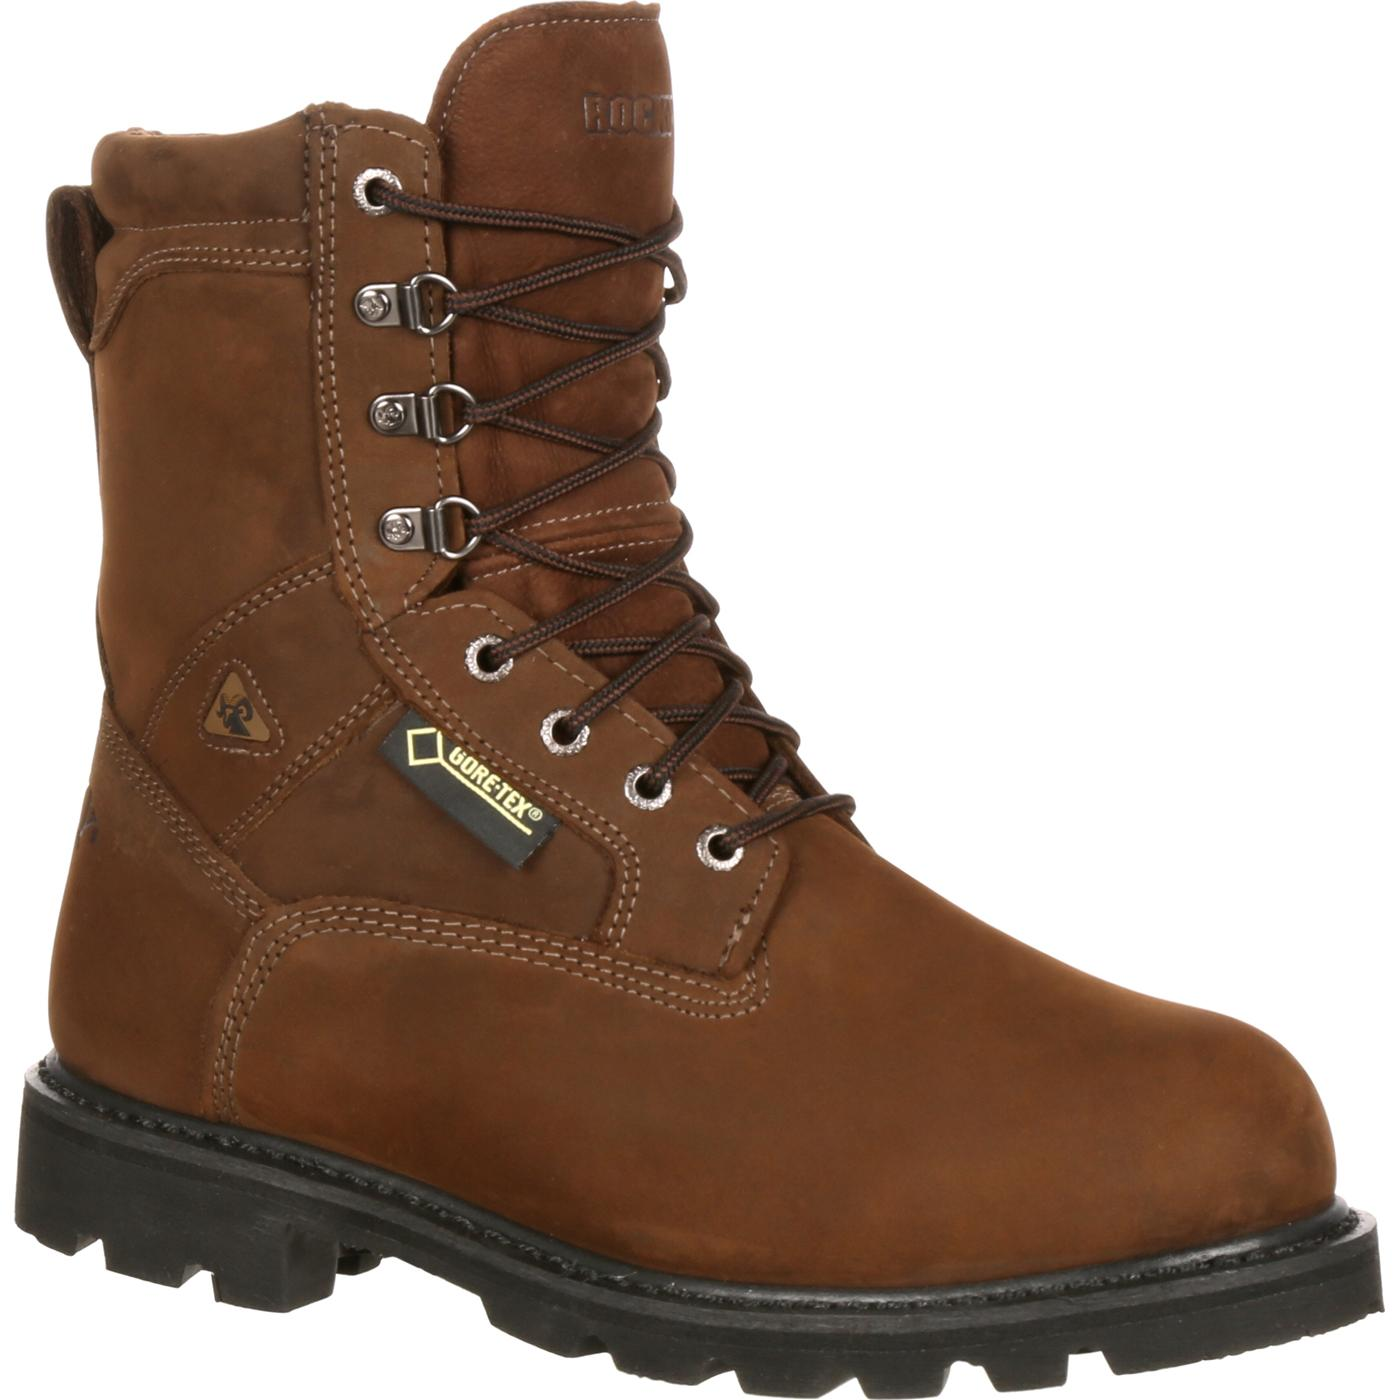 6223 Rocky Ranger Steel Toe Insulated GORE-TEX® Work Boots